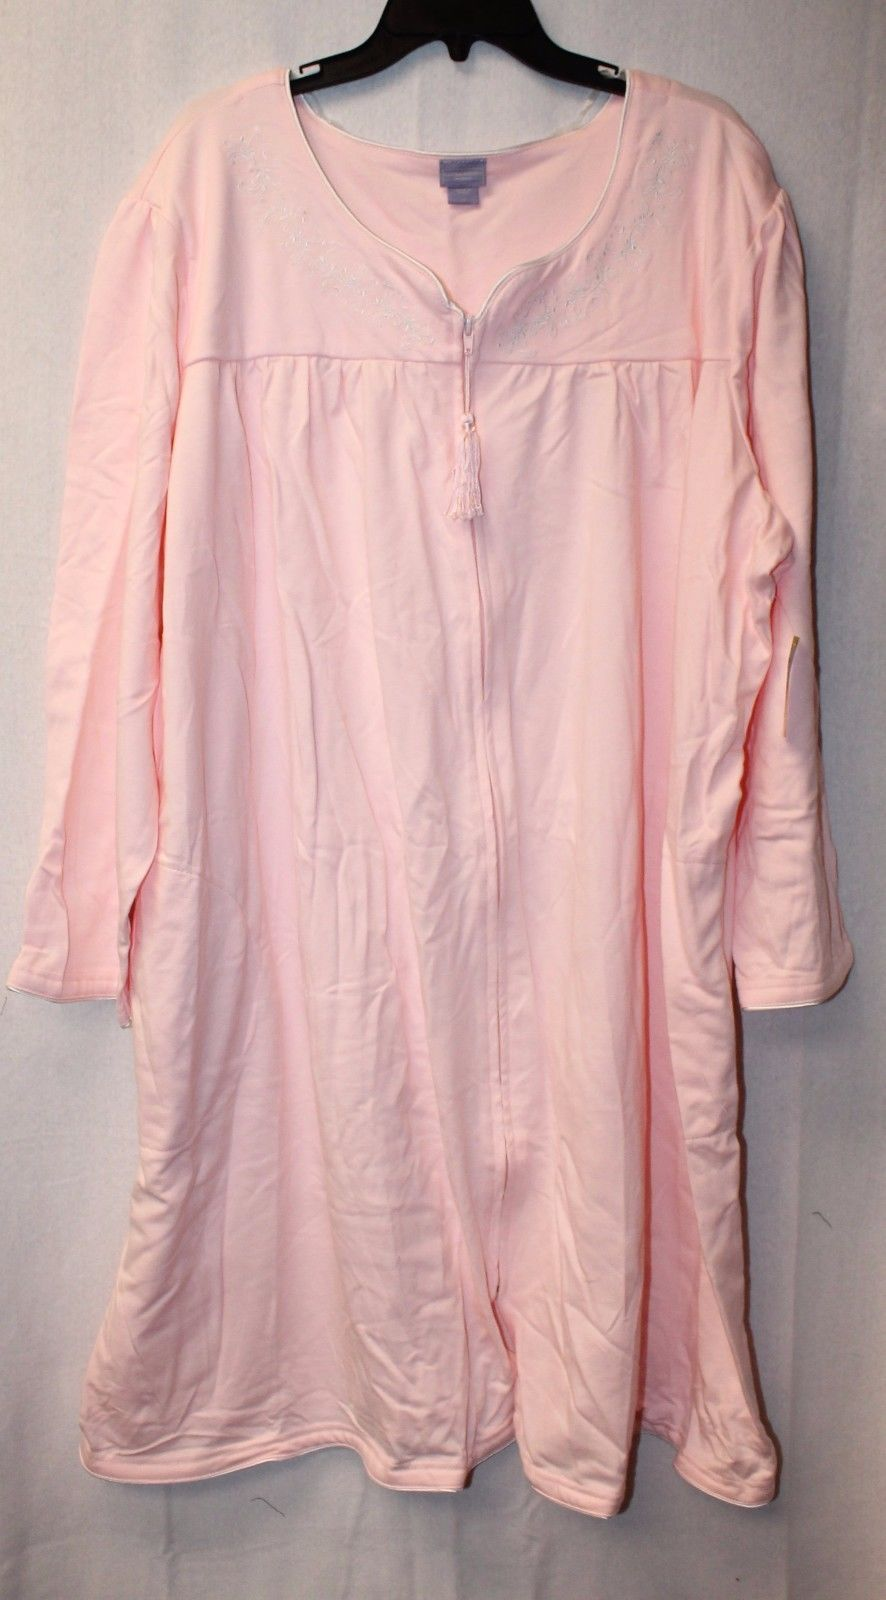 NEW LAURA SCOTT WOMENS PLUS SIZE 3X PINK EMBROIDERED KNIT DUSTER HOUSE BATH ROBE - $19.34